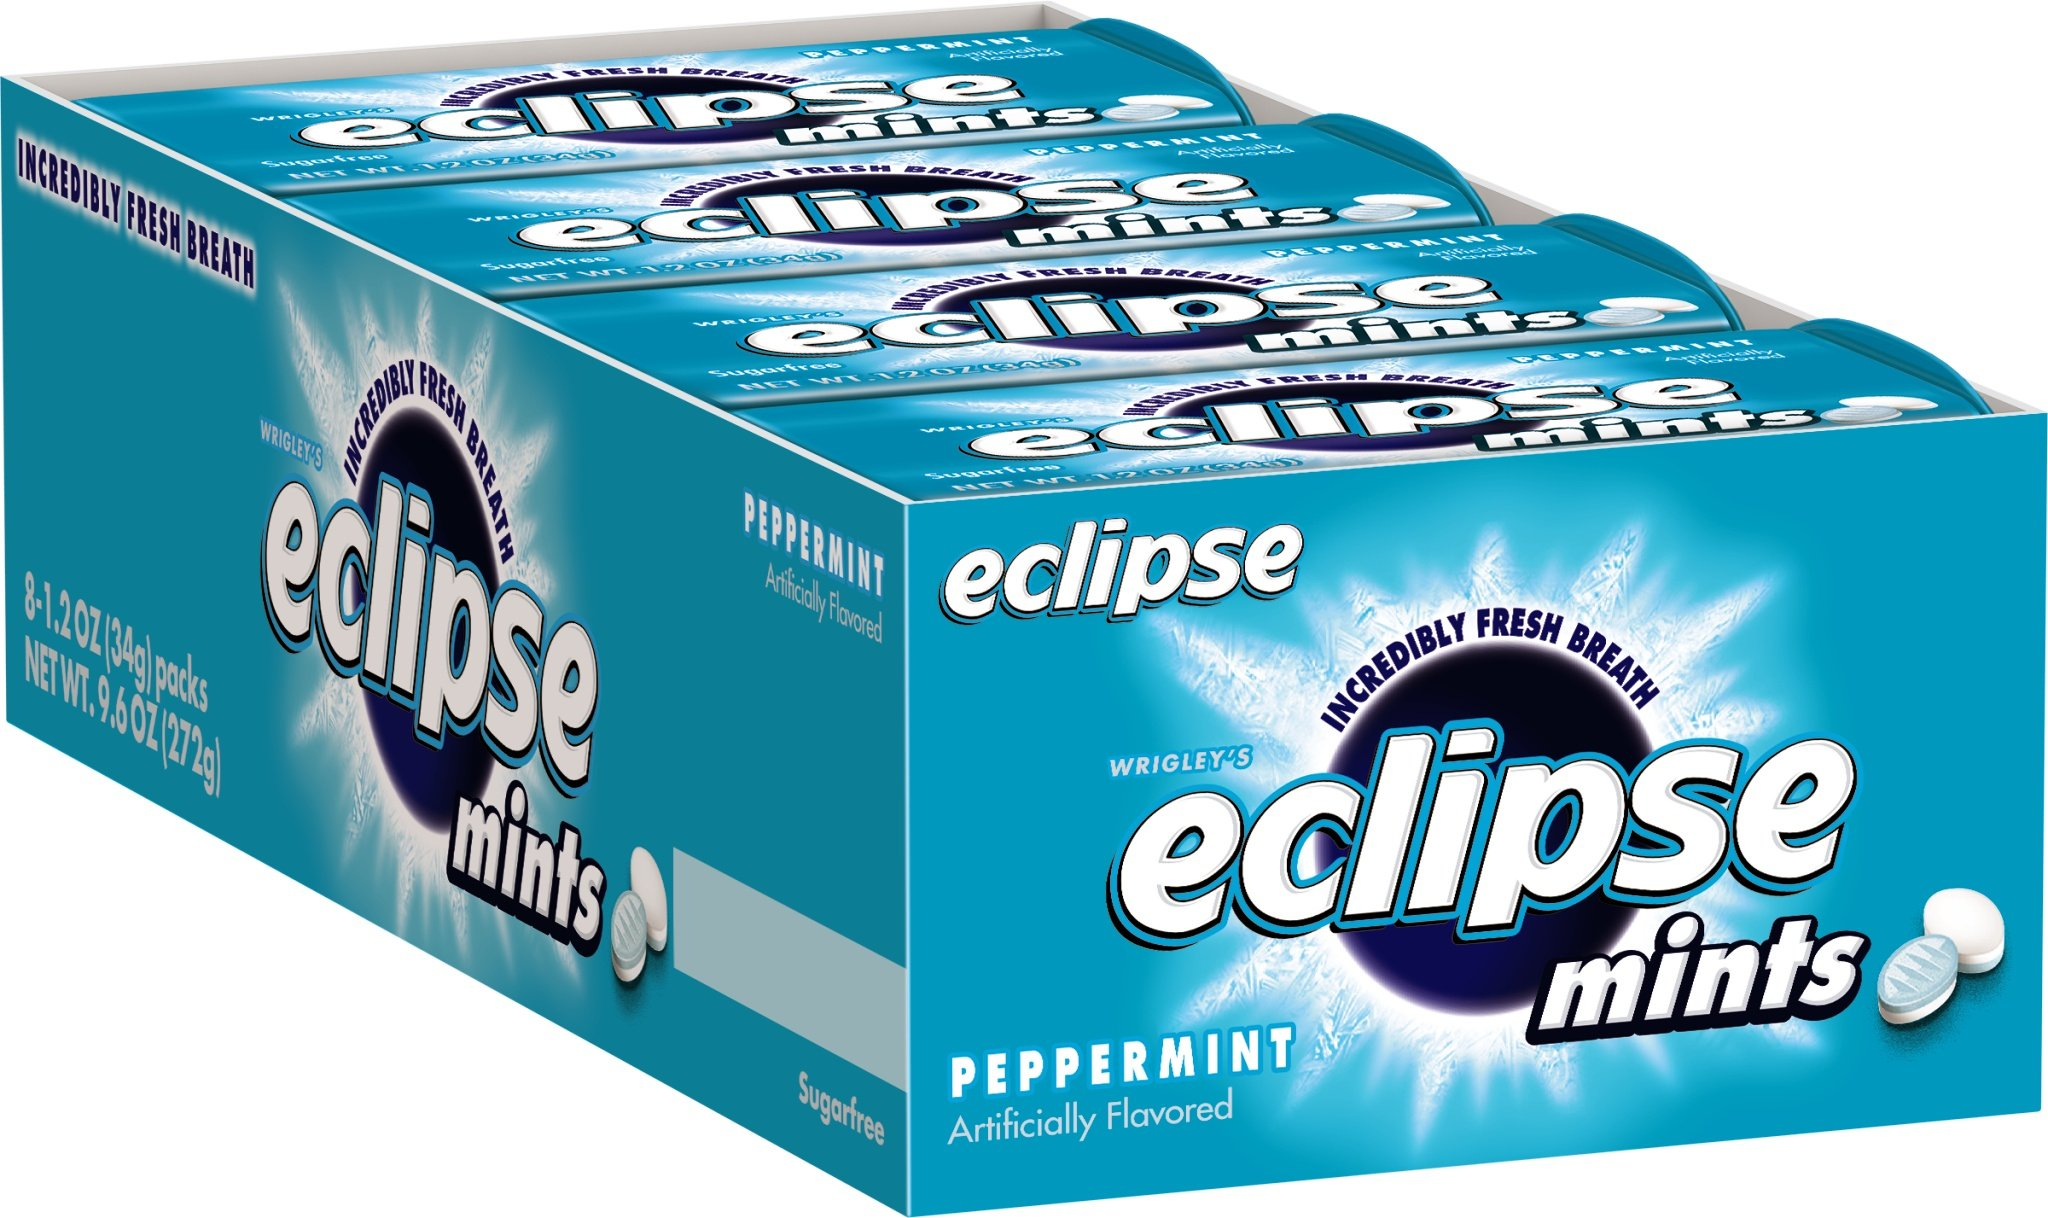 Eclipse Sugarfree Mints Peppermint, 1.2-Ounce Tins (Pack of 16)